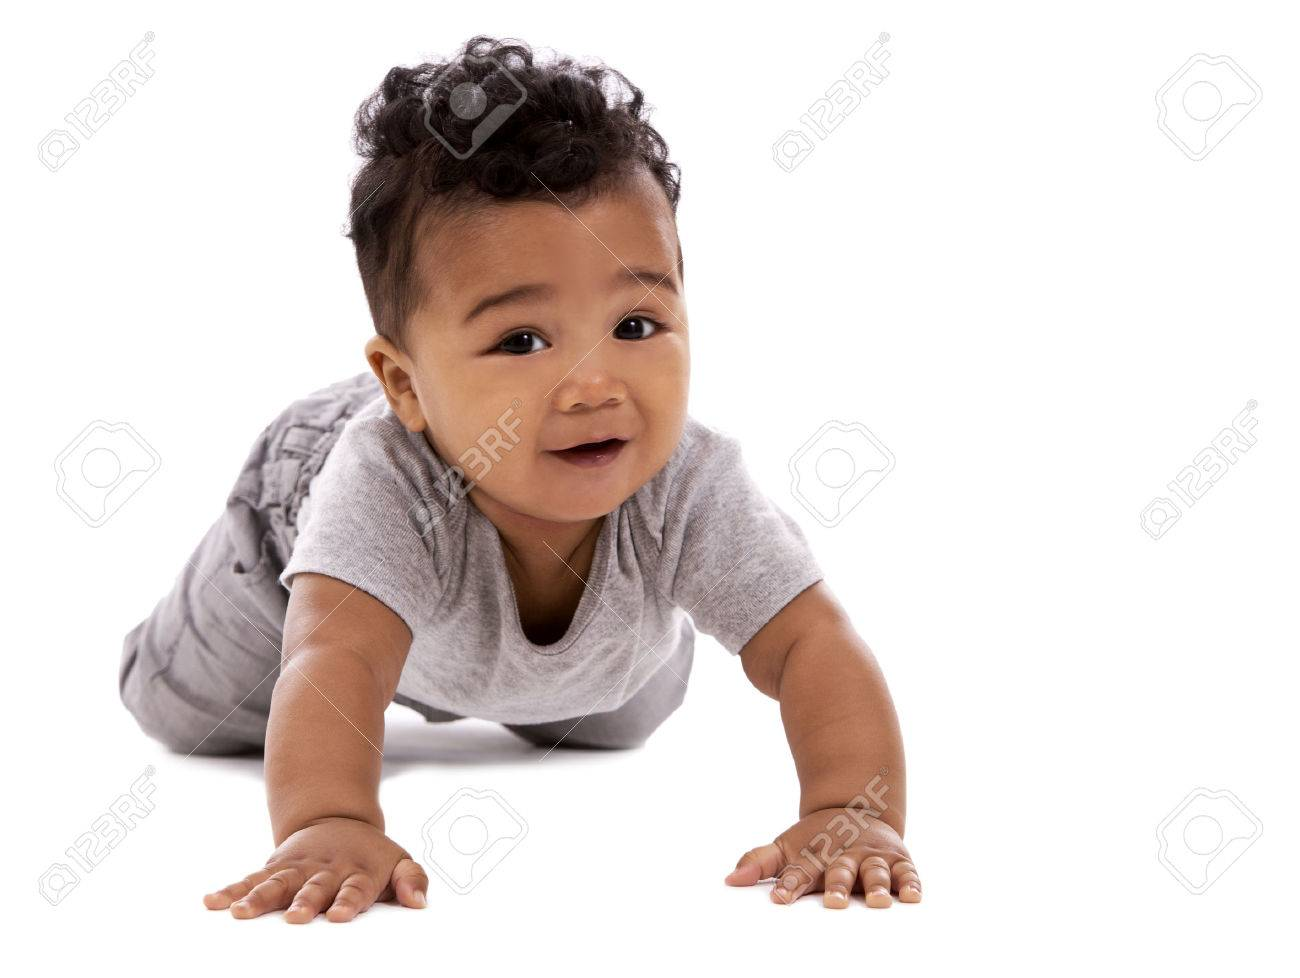 young baby boy wearing casual outfit on white background - 50756090